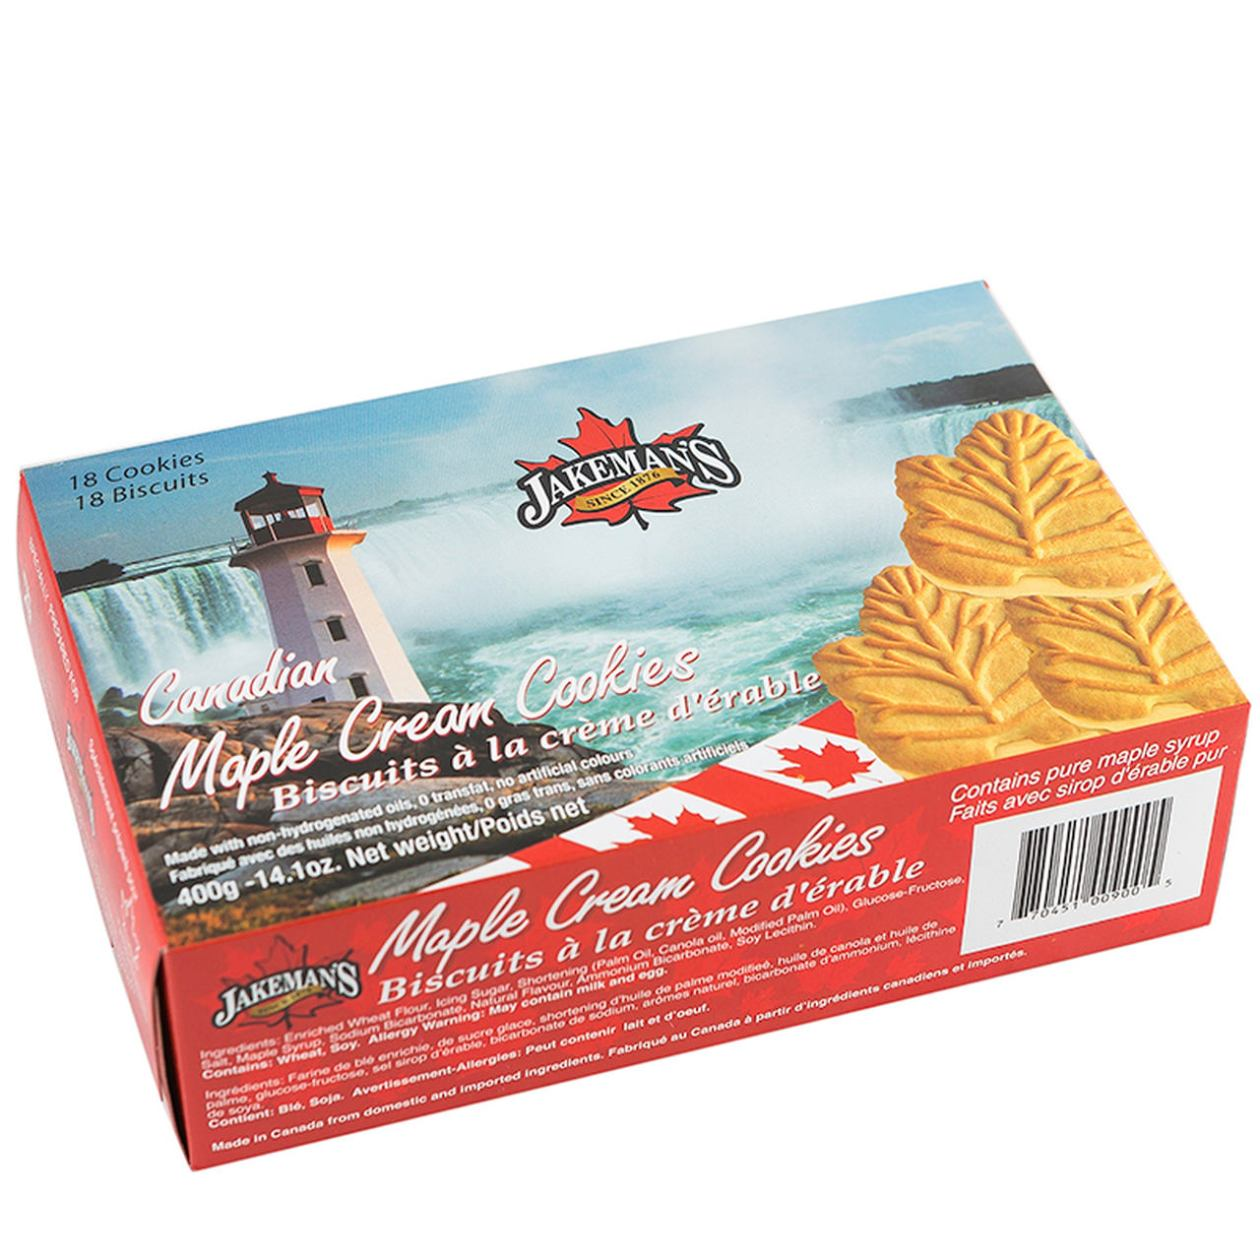 biscuits_Easy-Resize.com